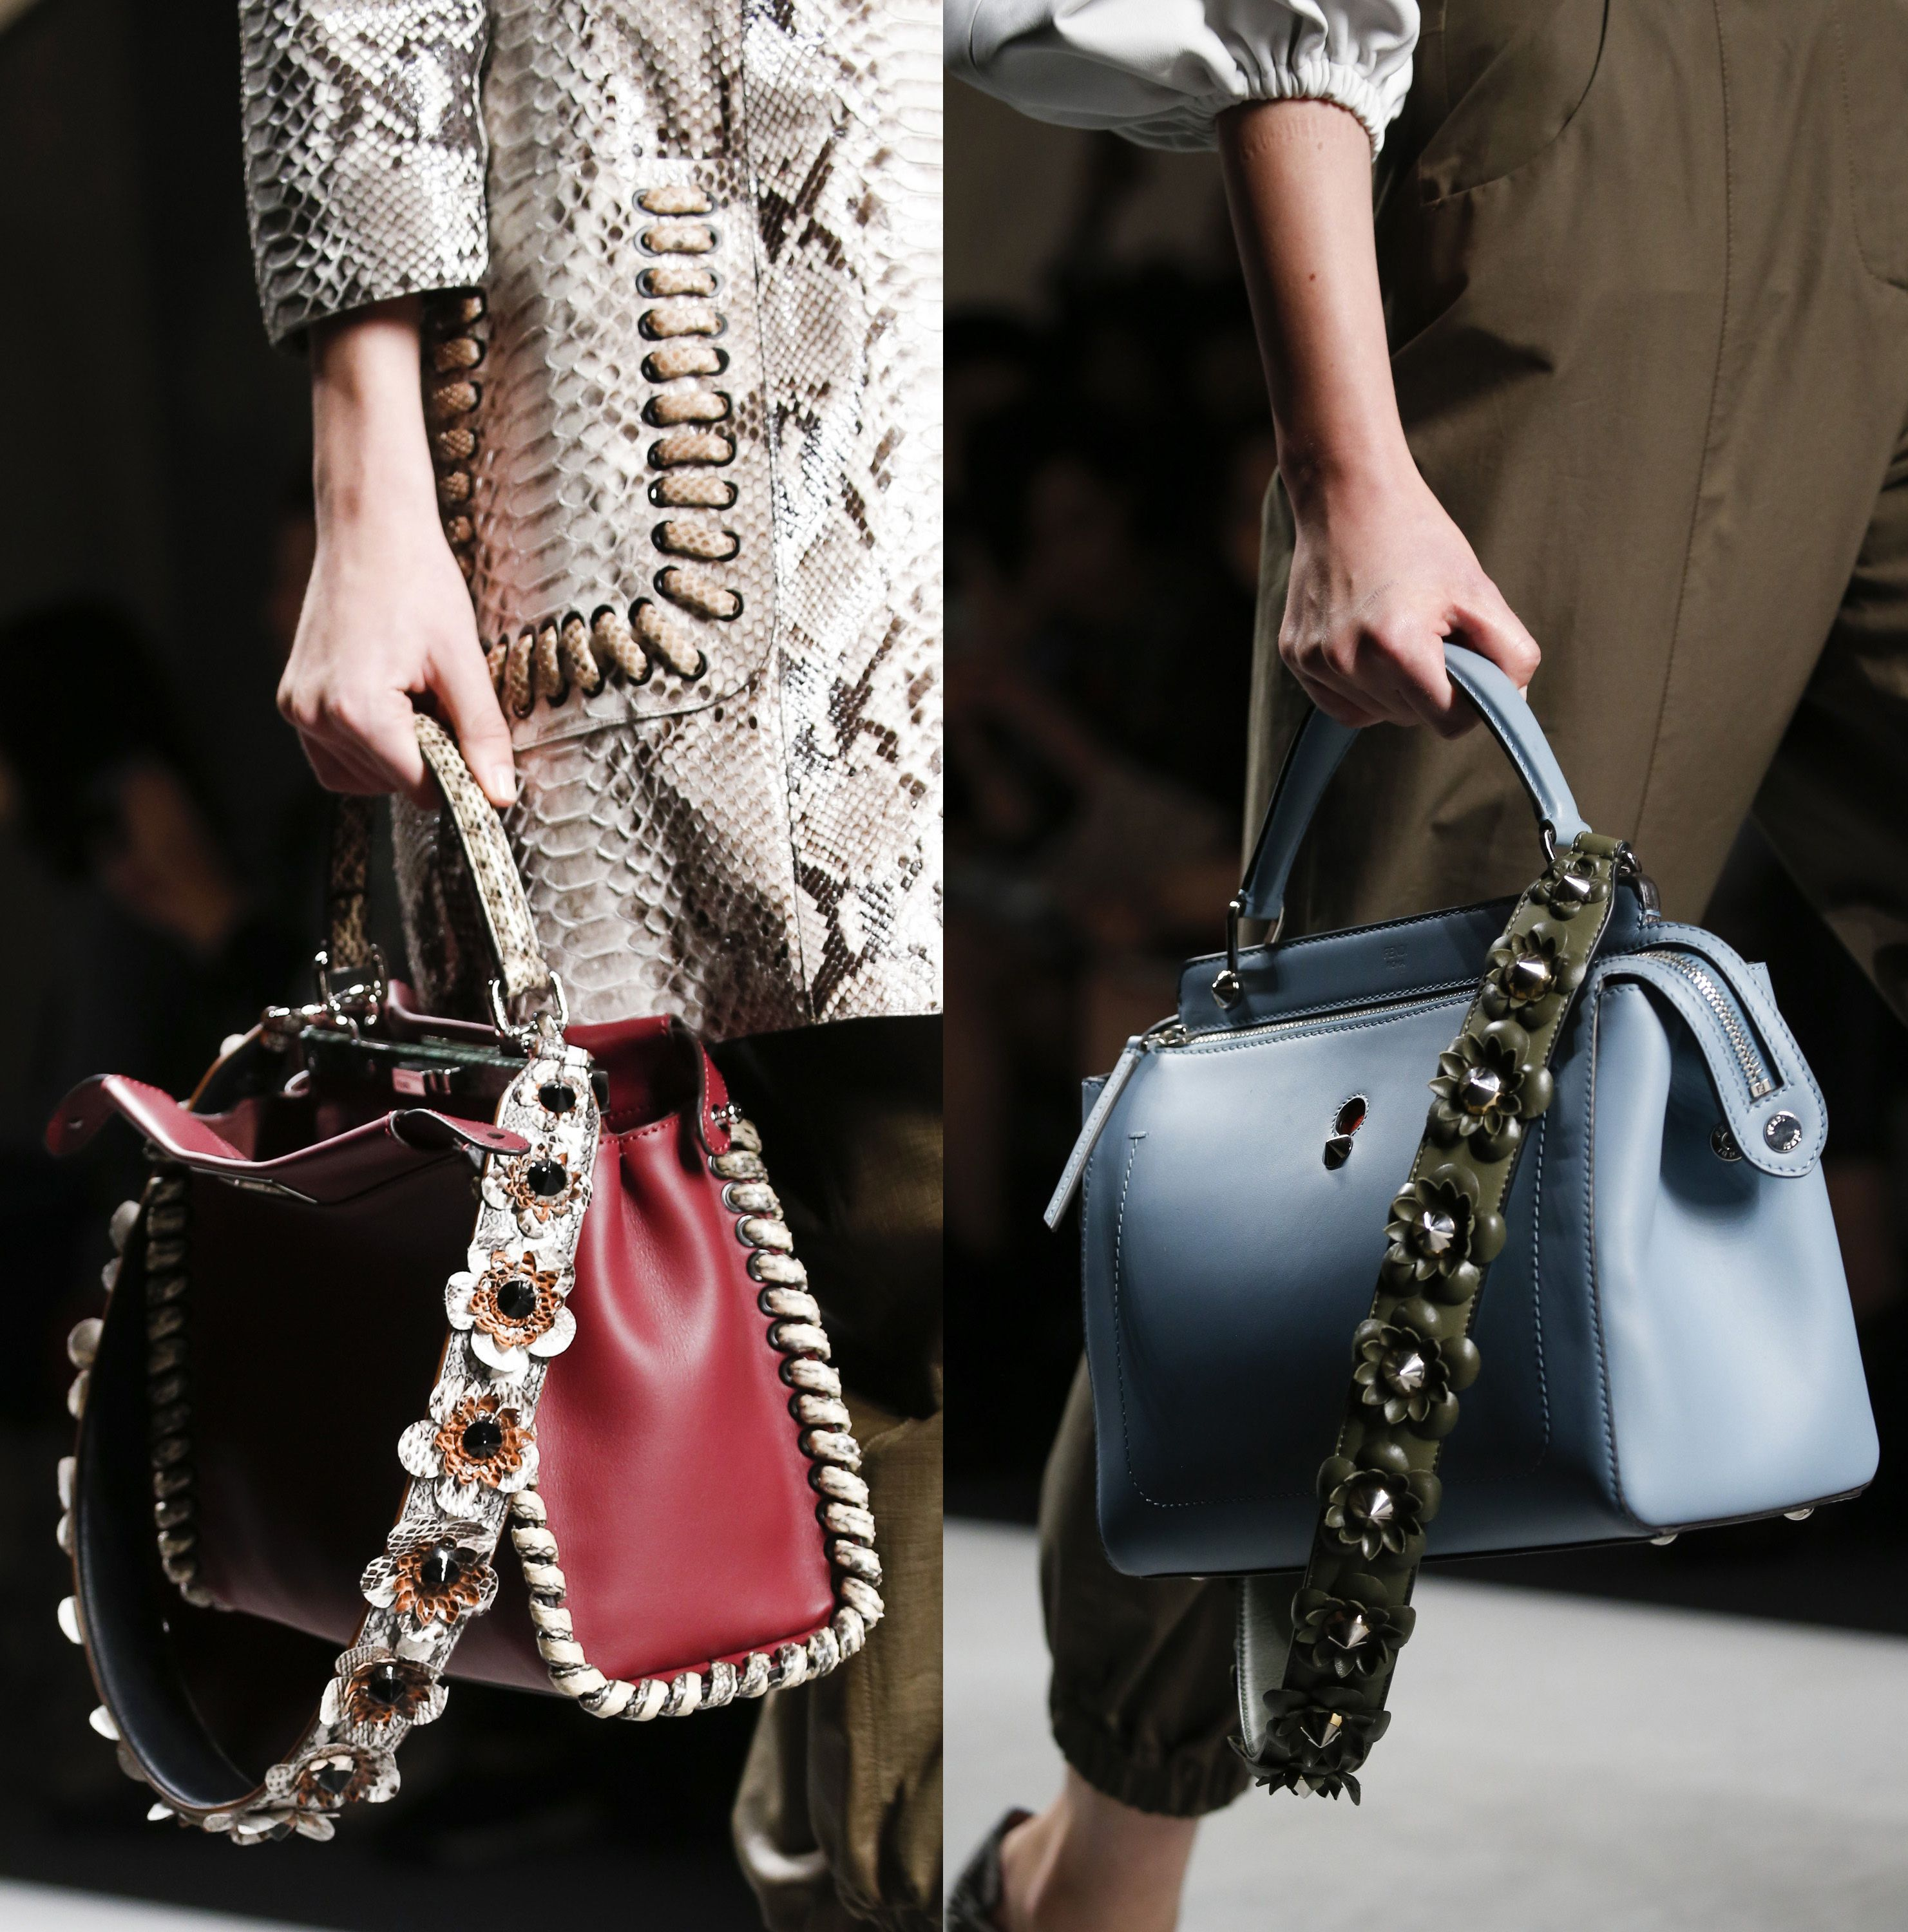 Guitar straps for handbags are the new it charm - LaiaMagazine ... 579ba750937f2